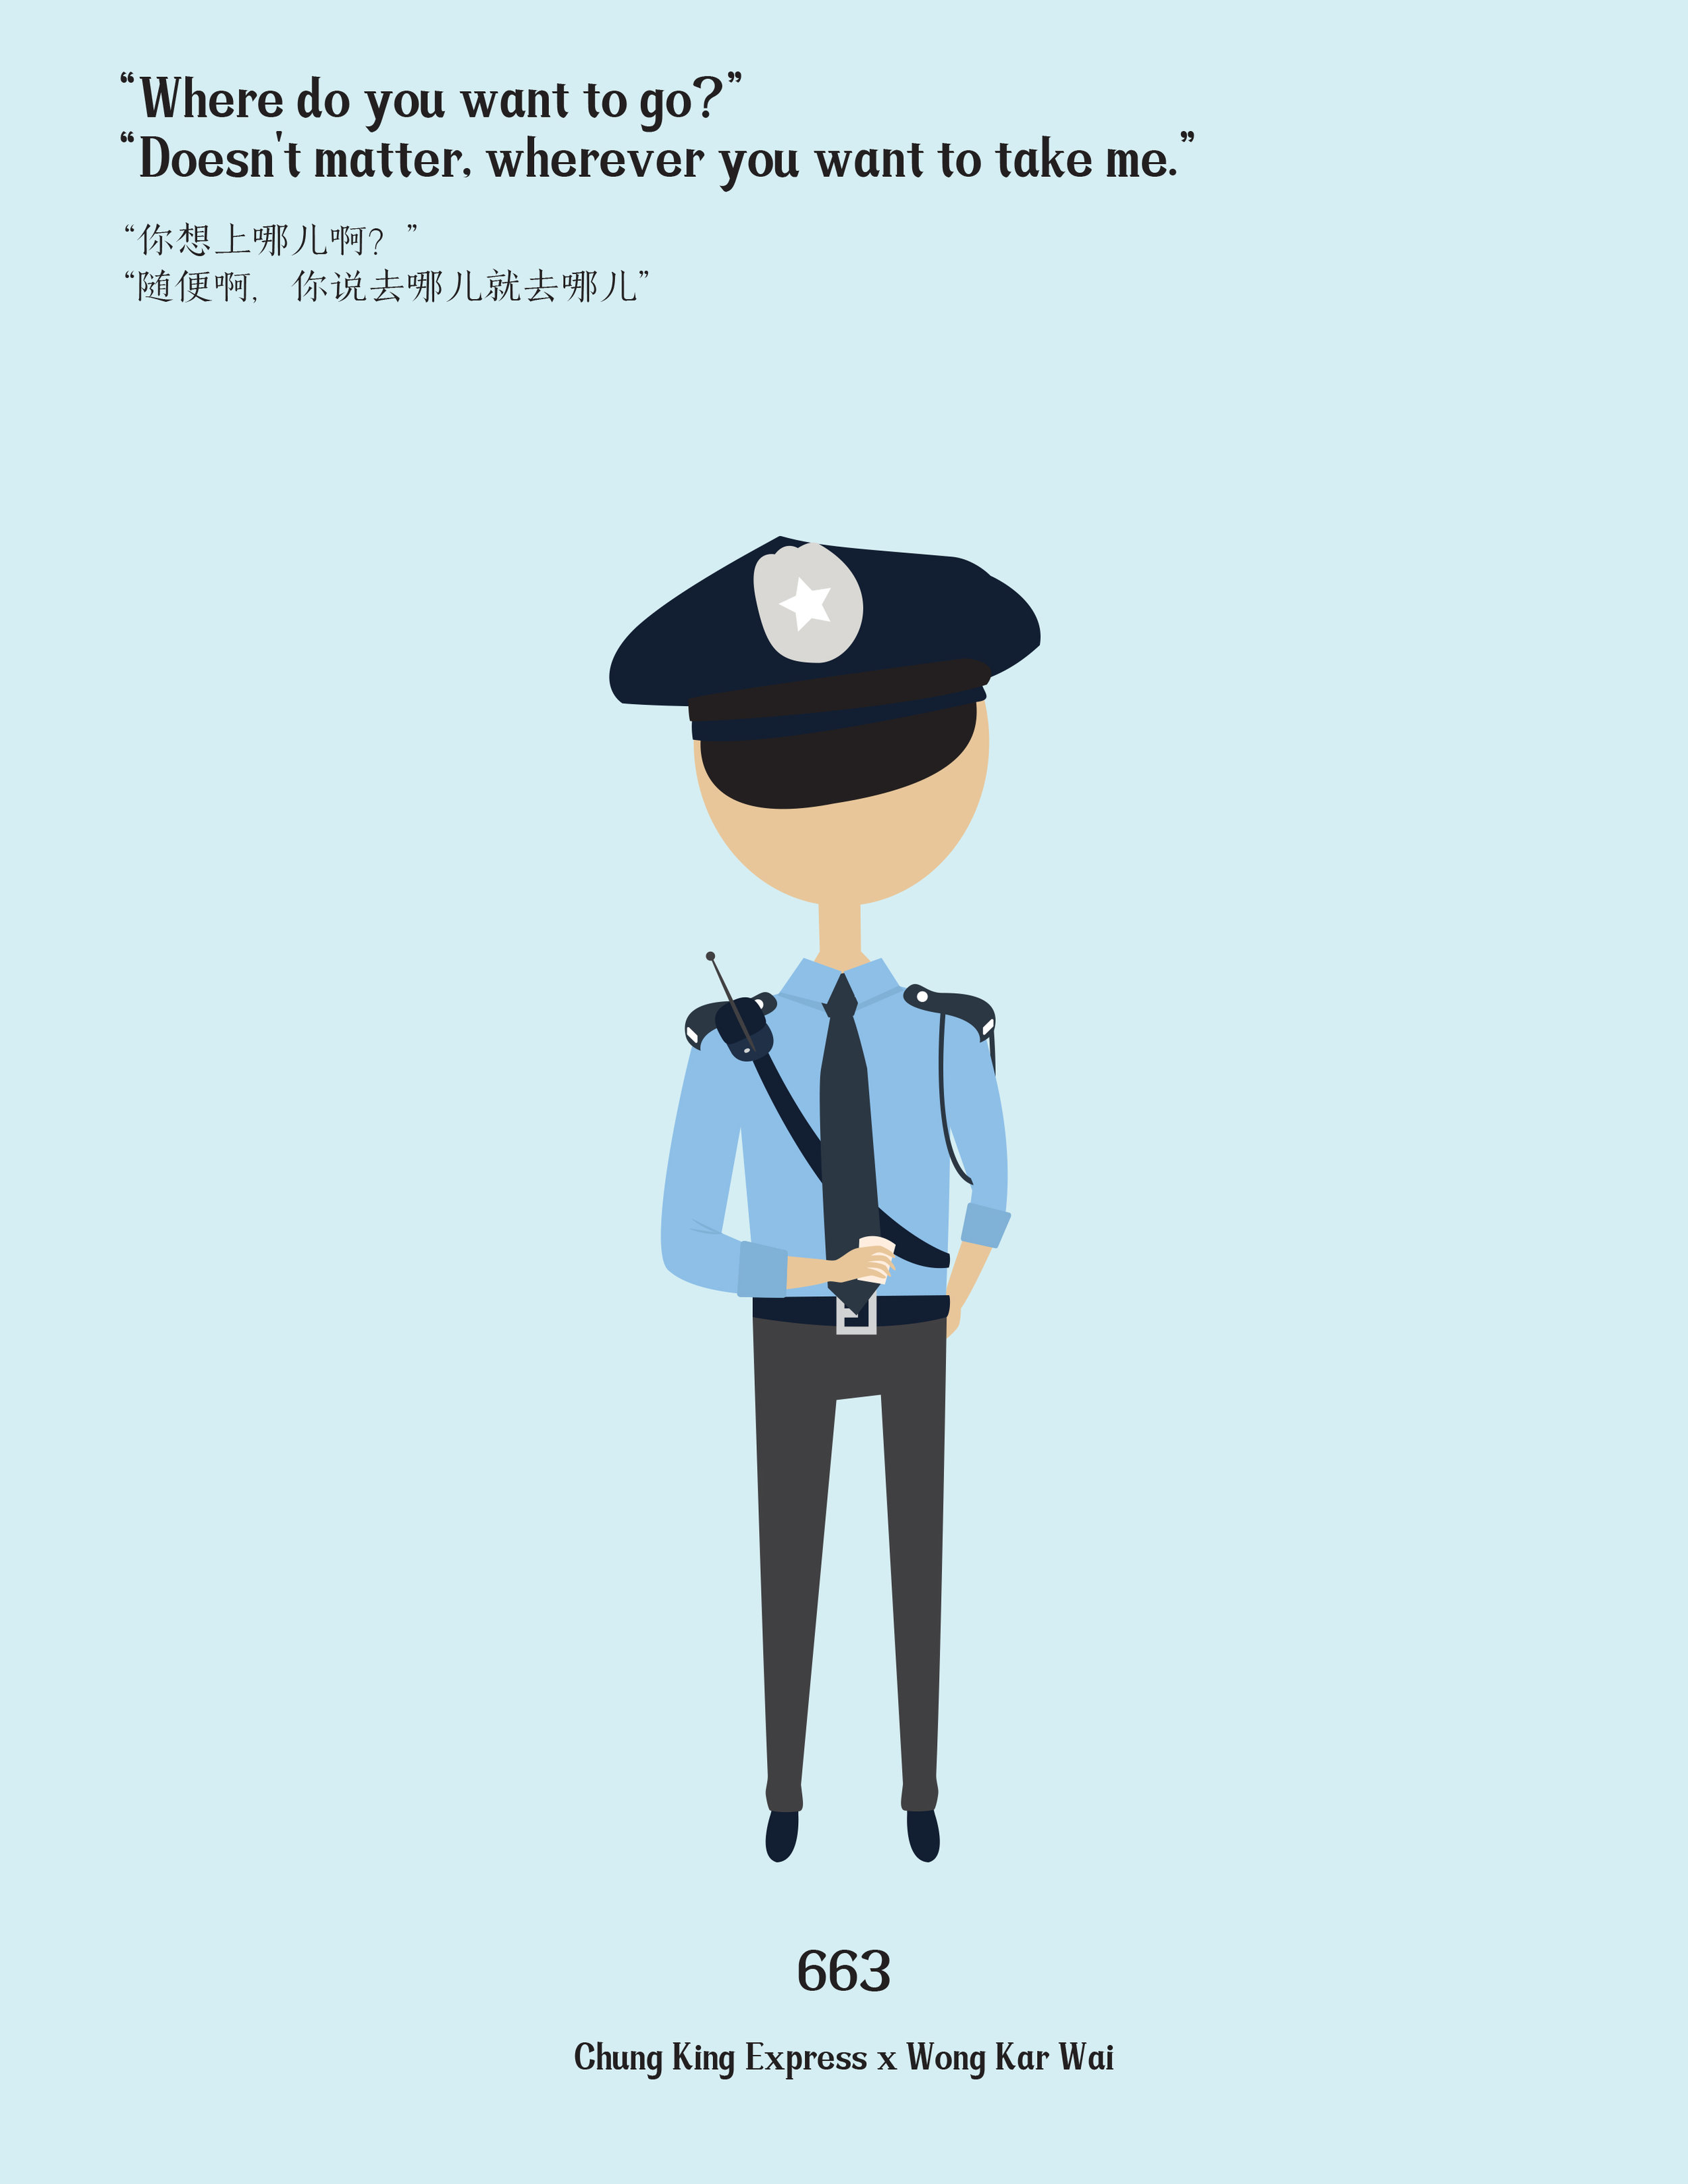 663 is a policeman who just broke up with girlfriend. Every night, he will go to the fast-food restaurant where Fei works, and buy a coffee. He is insensitive about how Fei feels about him.